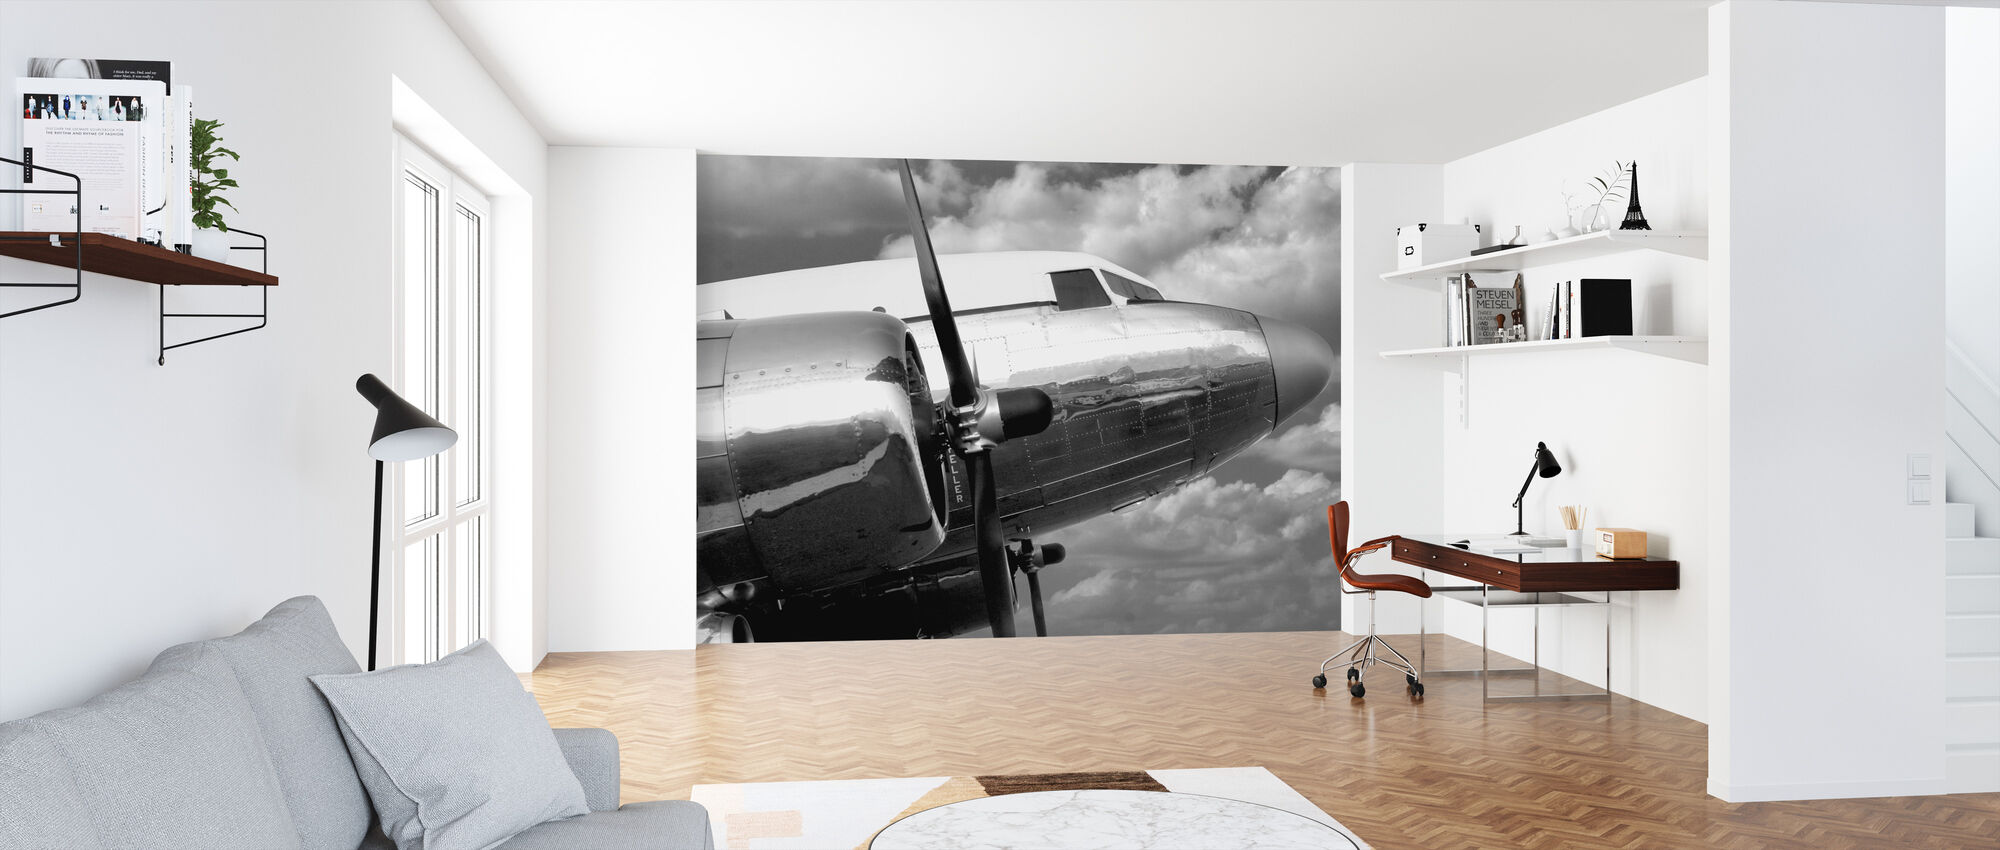 Airborne 3 - Wallpaper - Office